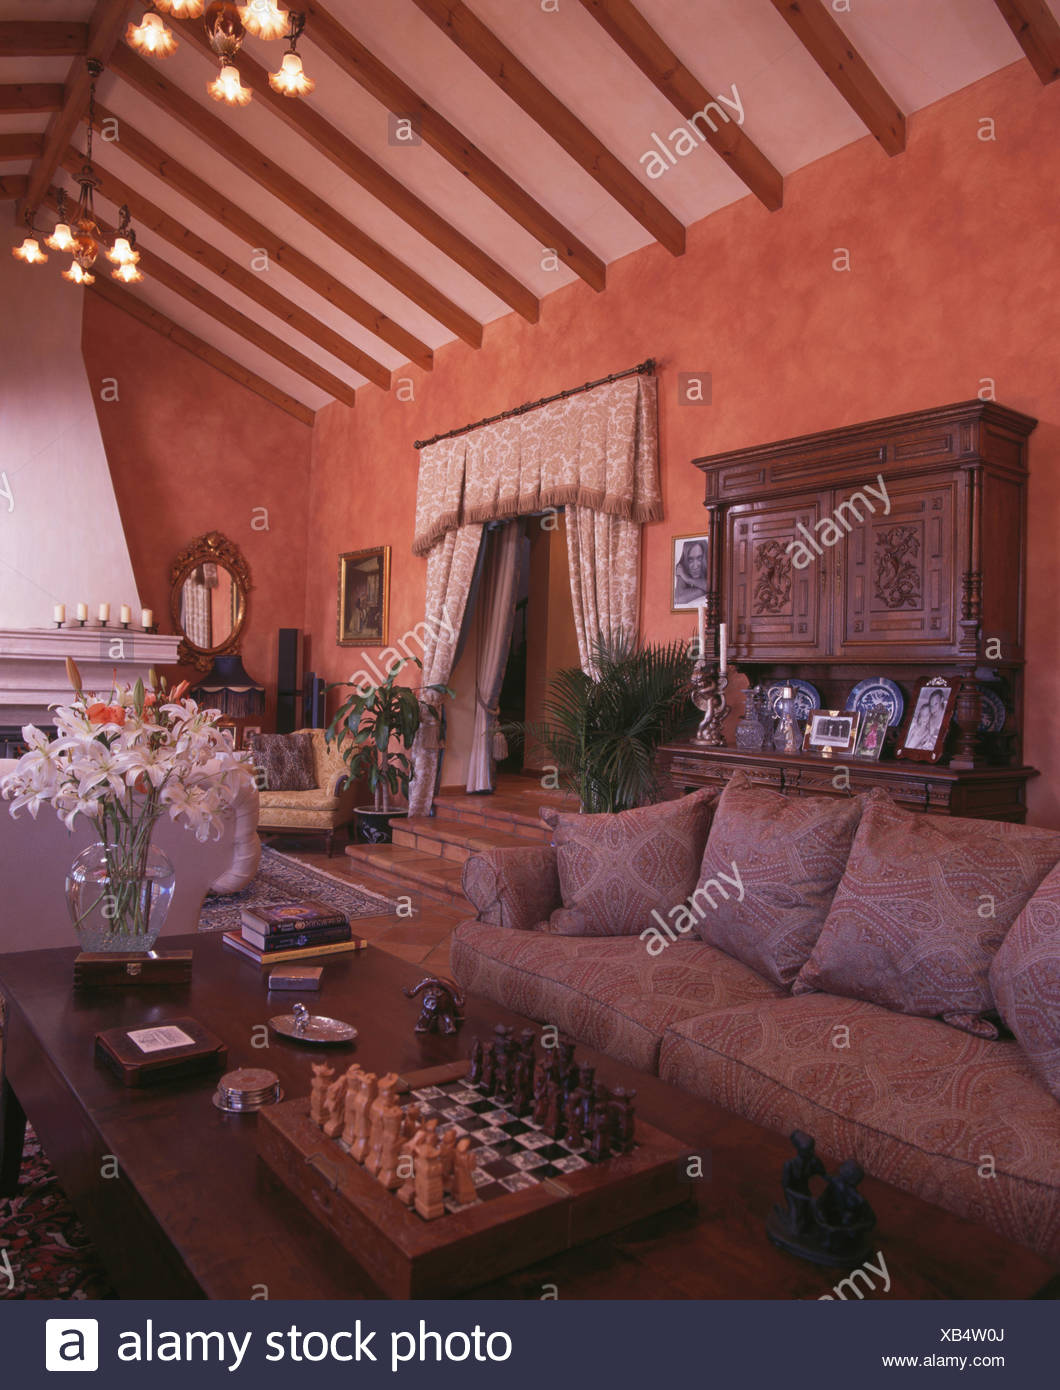 Pale Grey Sofa Beside Table With A Chess Set In Terracotta